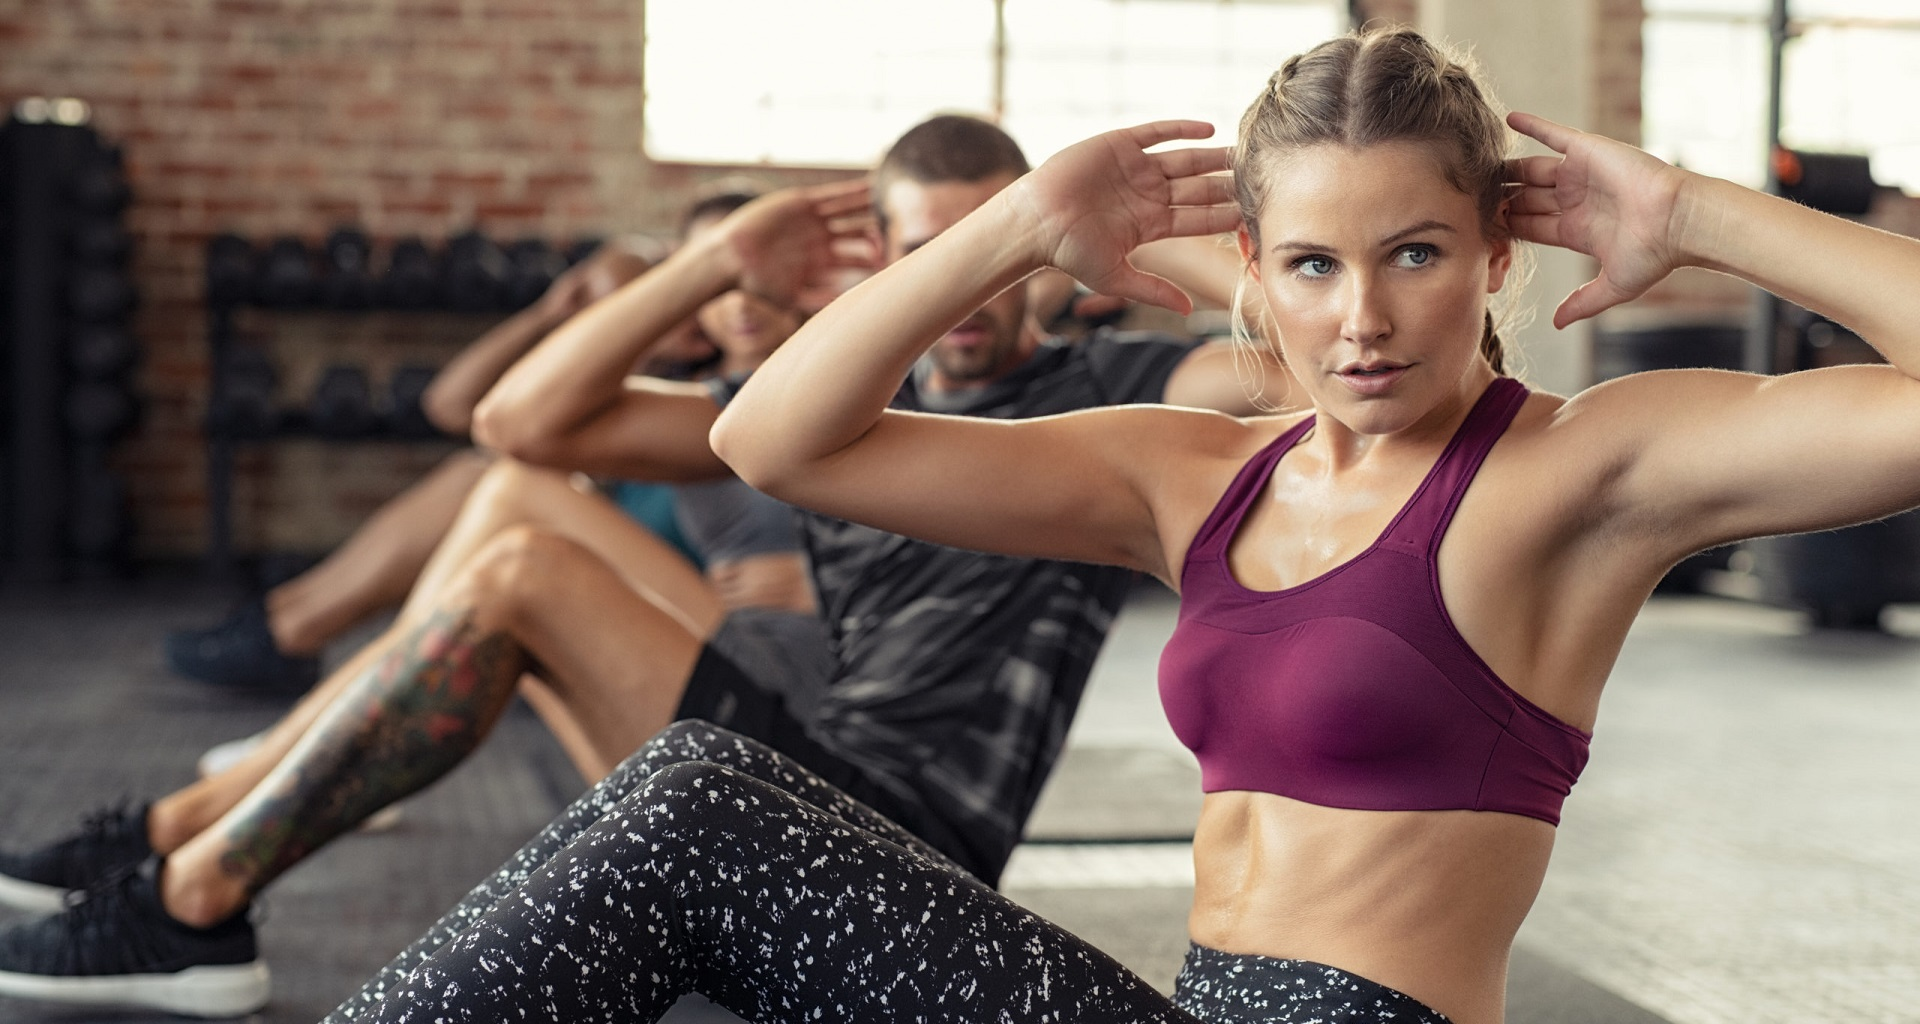 Woman doing abs exercise at cardio course